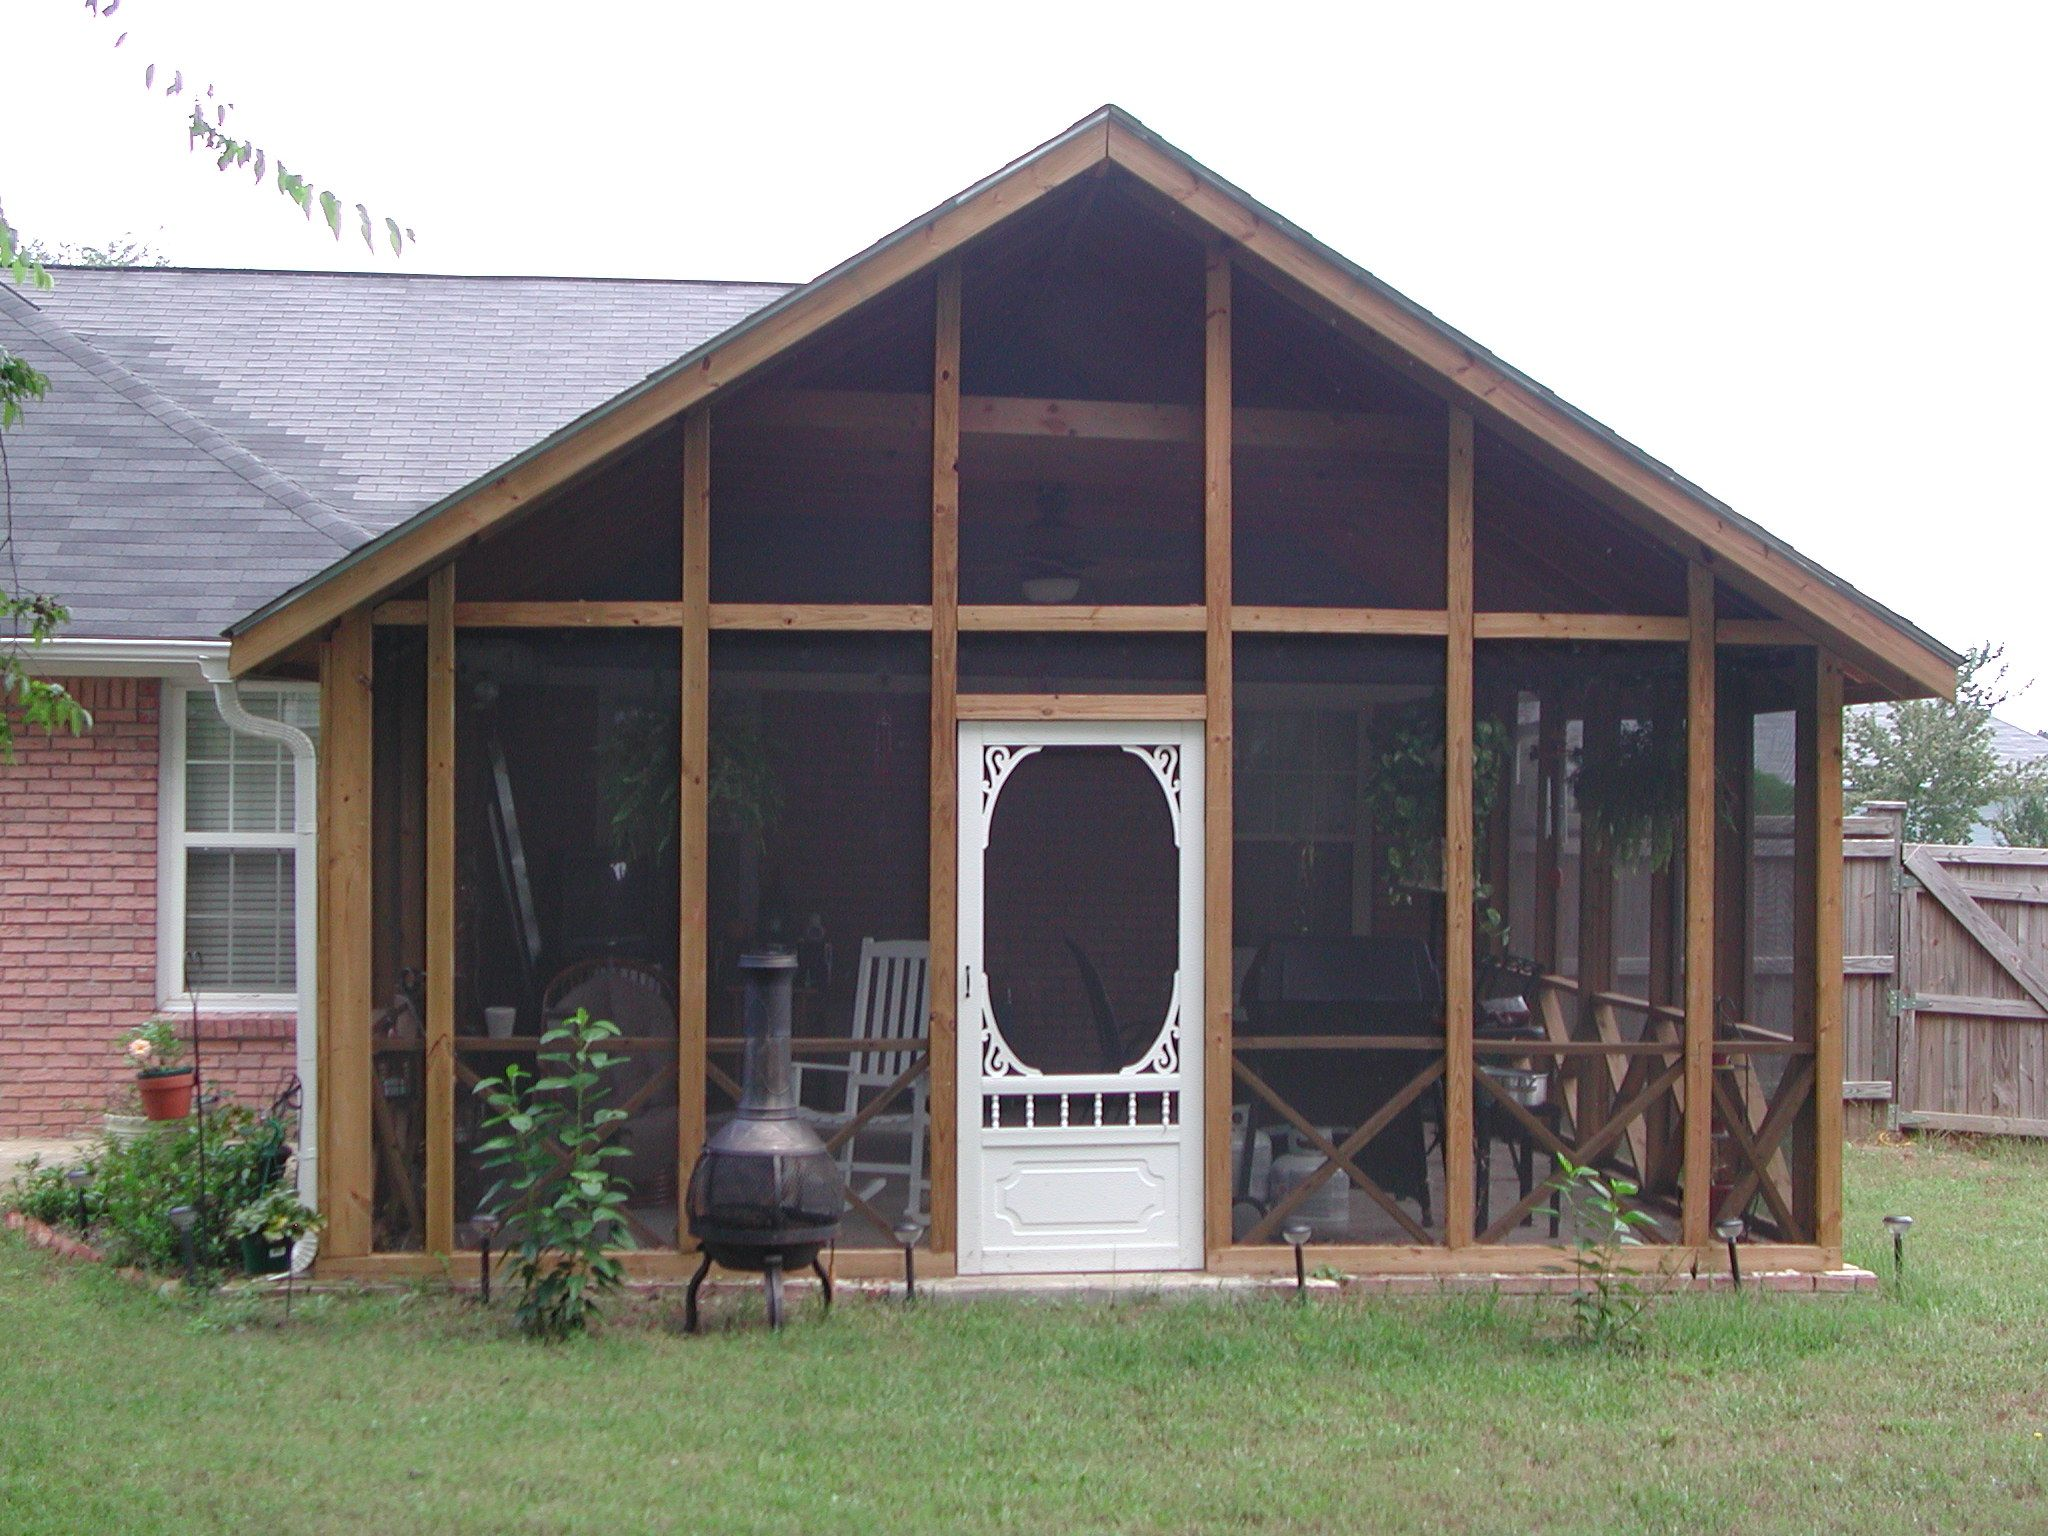 sunrooms how a roof files front amazing repair does between ideas best cost porch at pict style farmhouse much enclosed porches the difference apple for screened understanding screen and enclosing